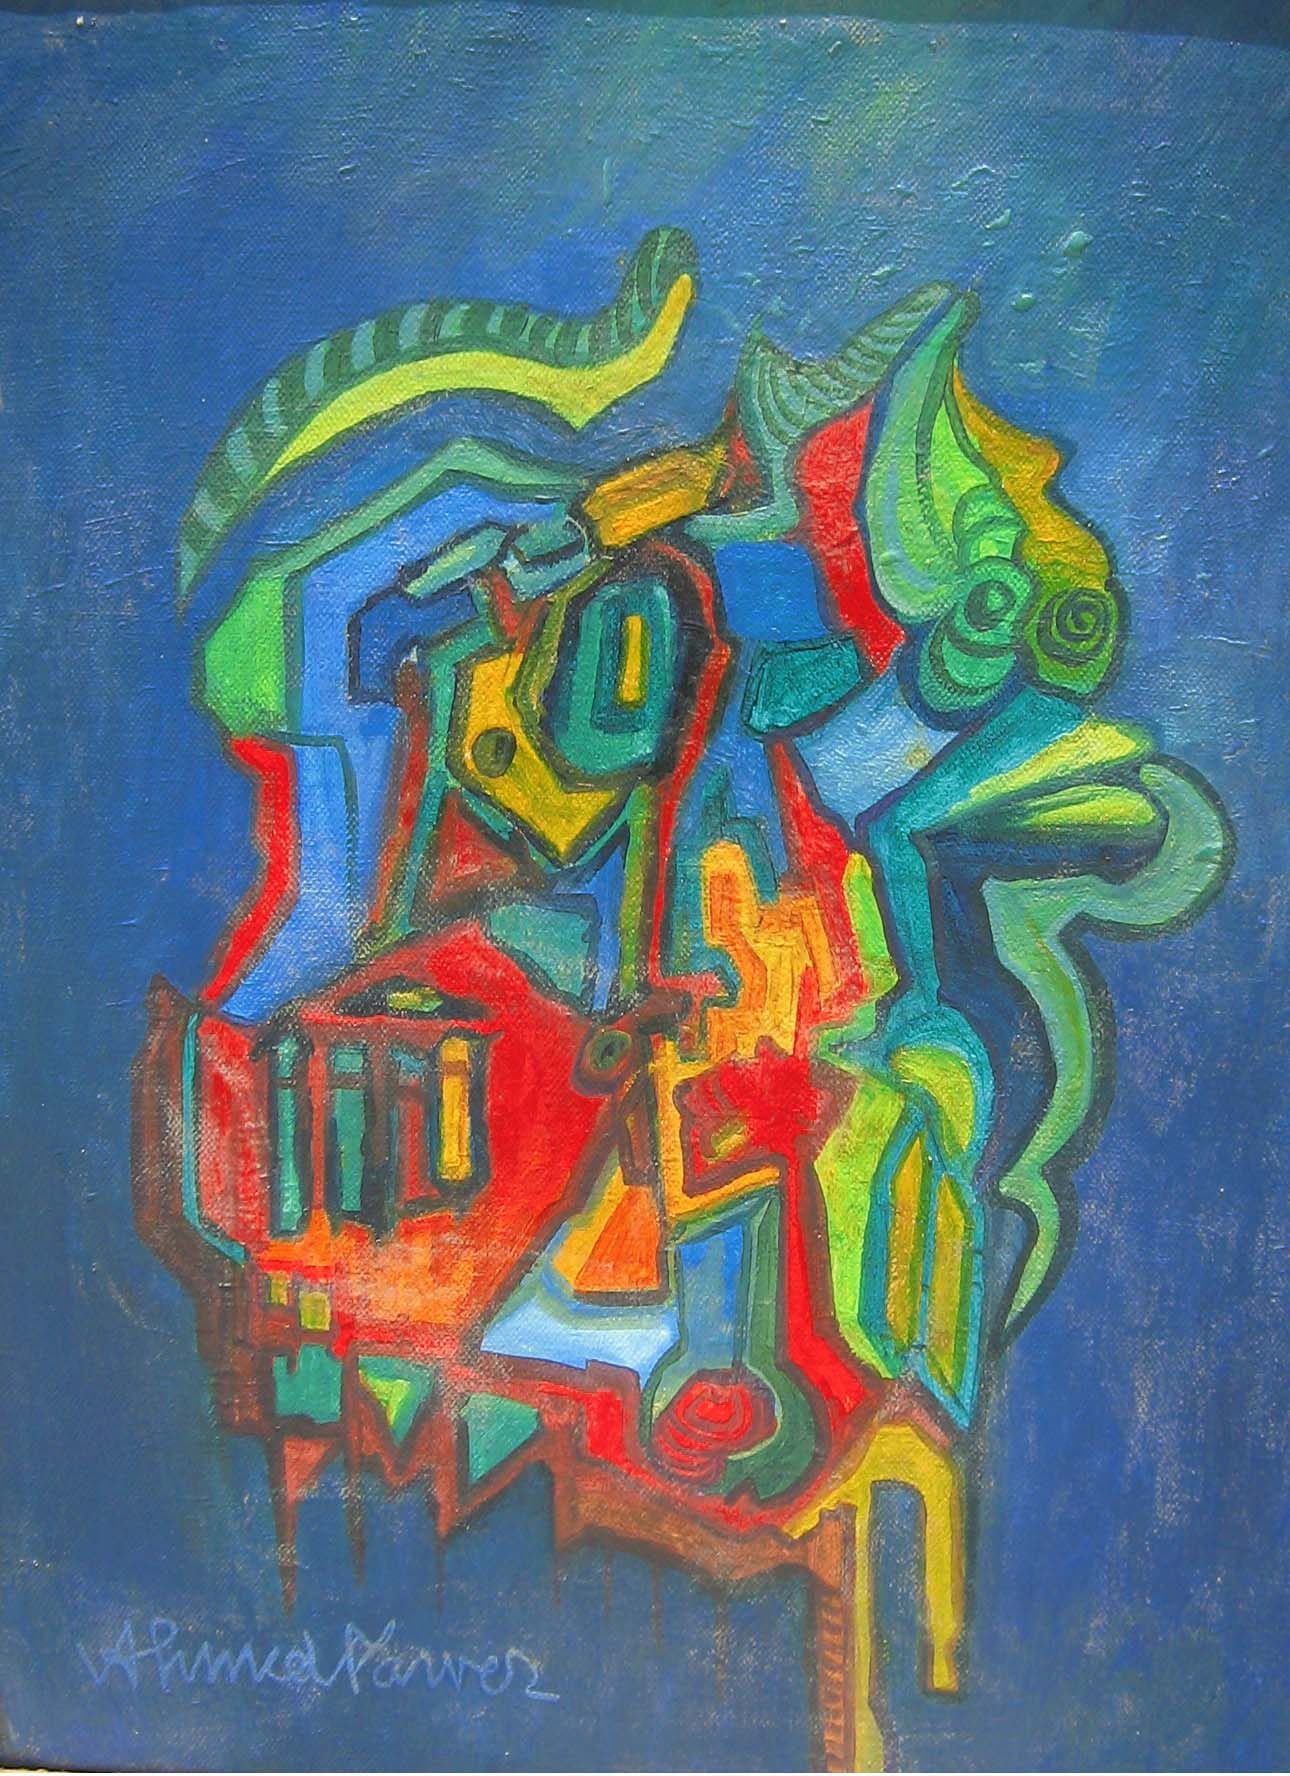 Untitled by Ahmed Parvaz. Image Courtesy ArtChowk Gallery